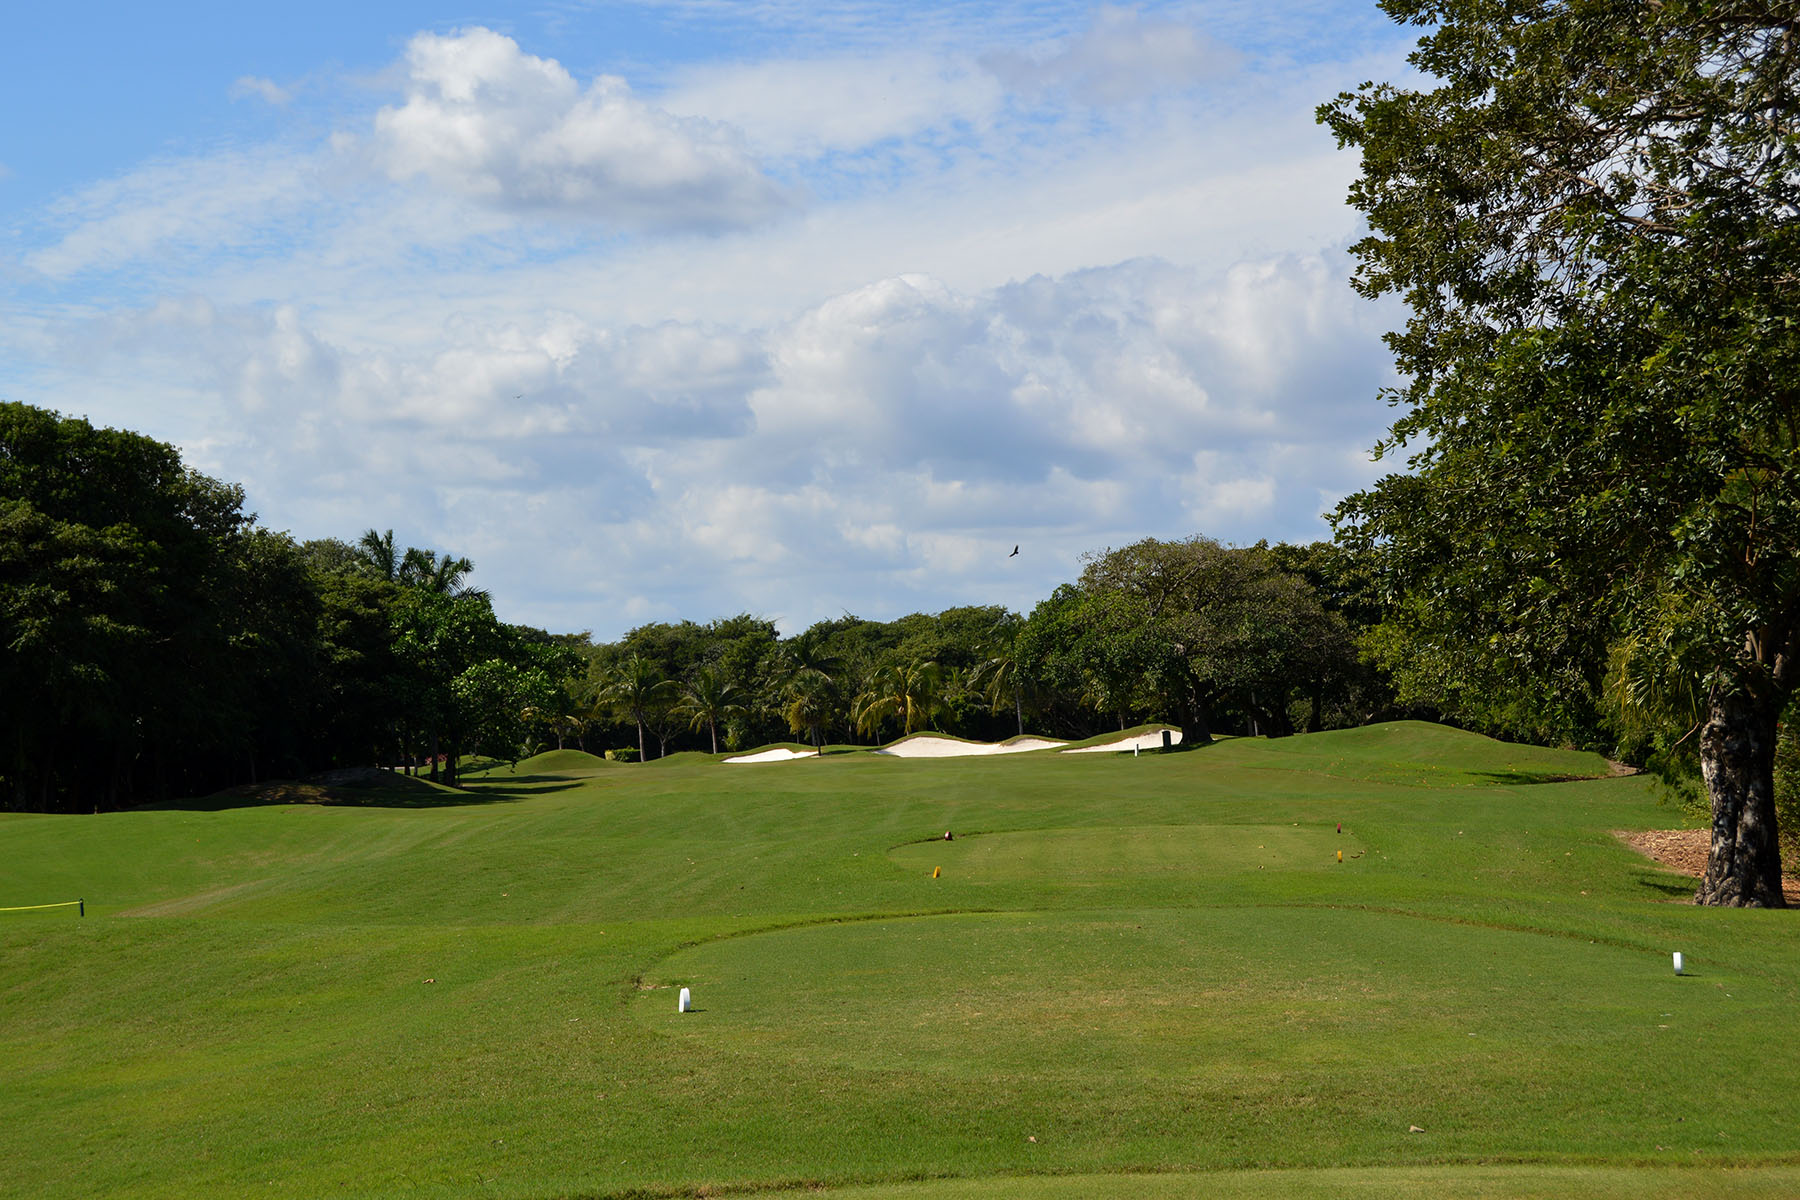 Additional photo for property listing at 107 CLUB REAL RESIDENTIAL LOT 107 Club Real Residential Lot Retorno Copan Playa Del Carmen, Quintana Roo 77710 Mexico